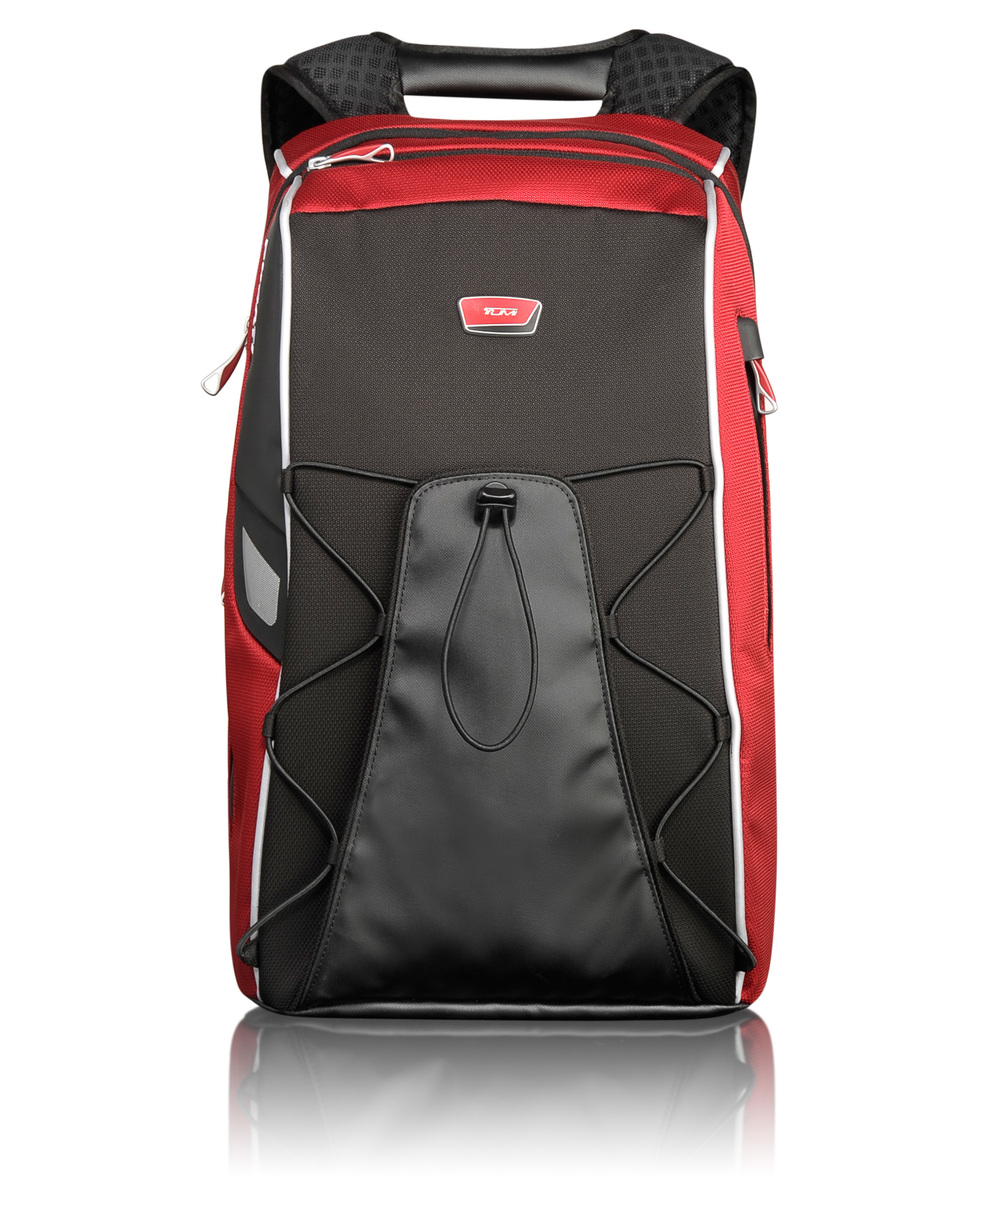 65181 Race Ducati  Tank Medium Backpack.jpeg